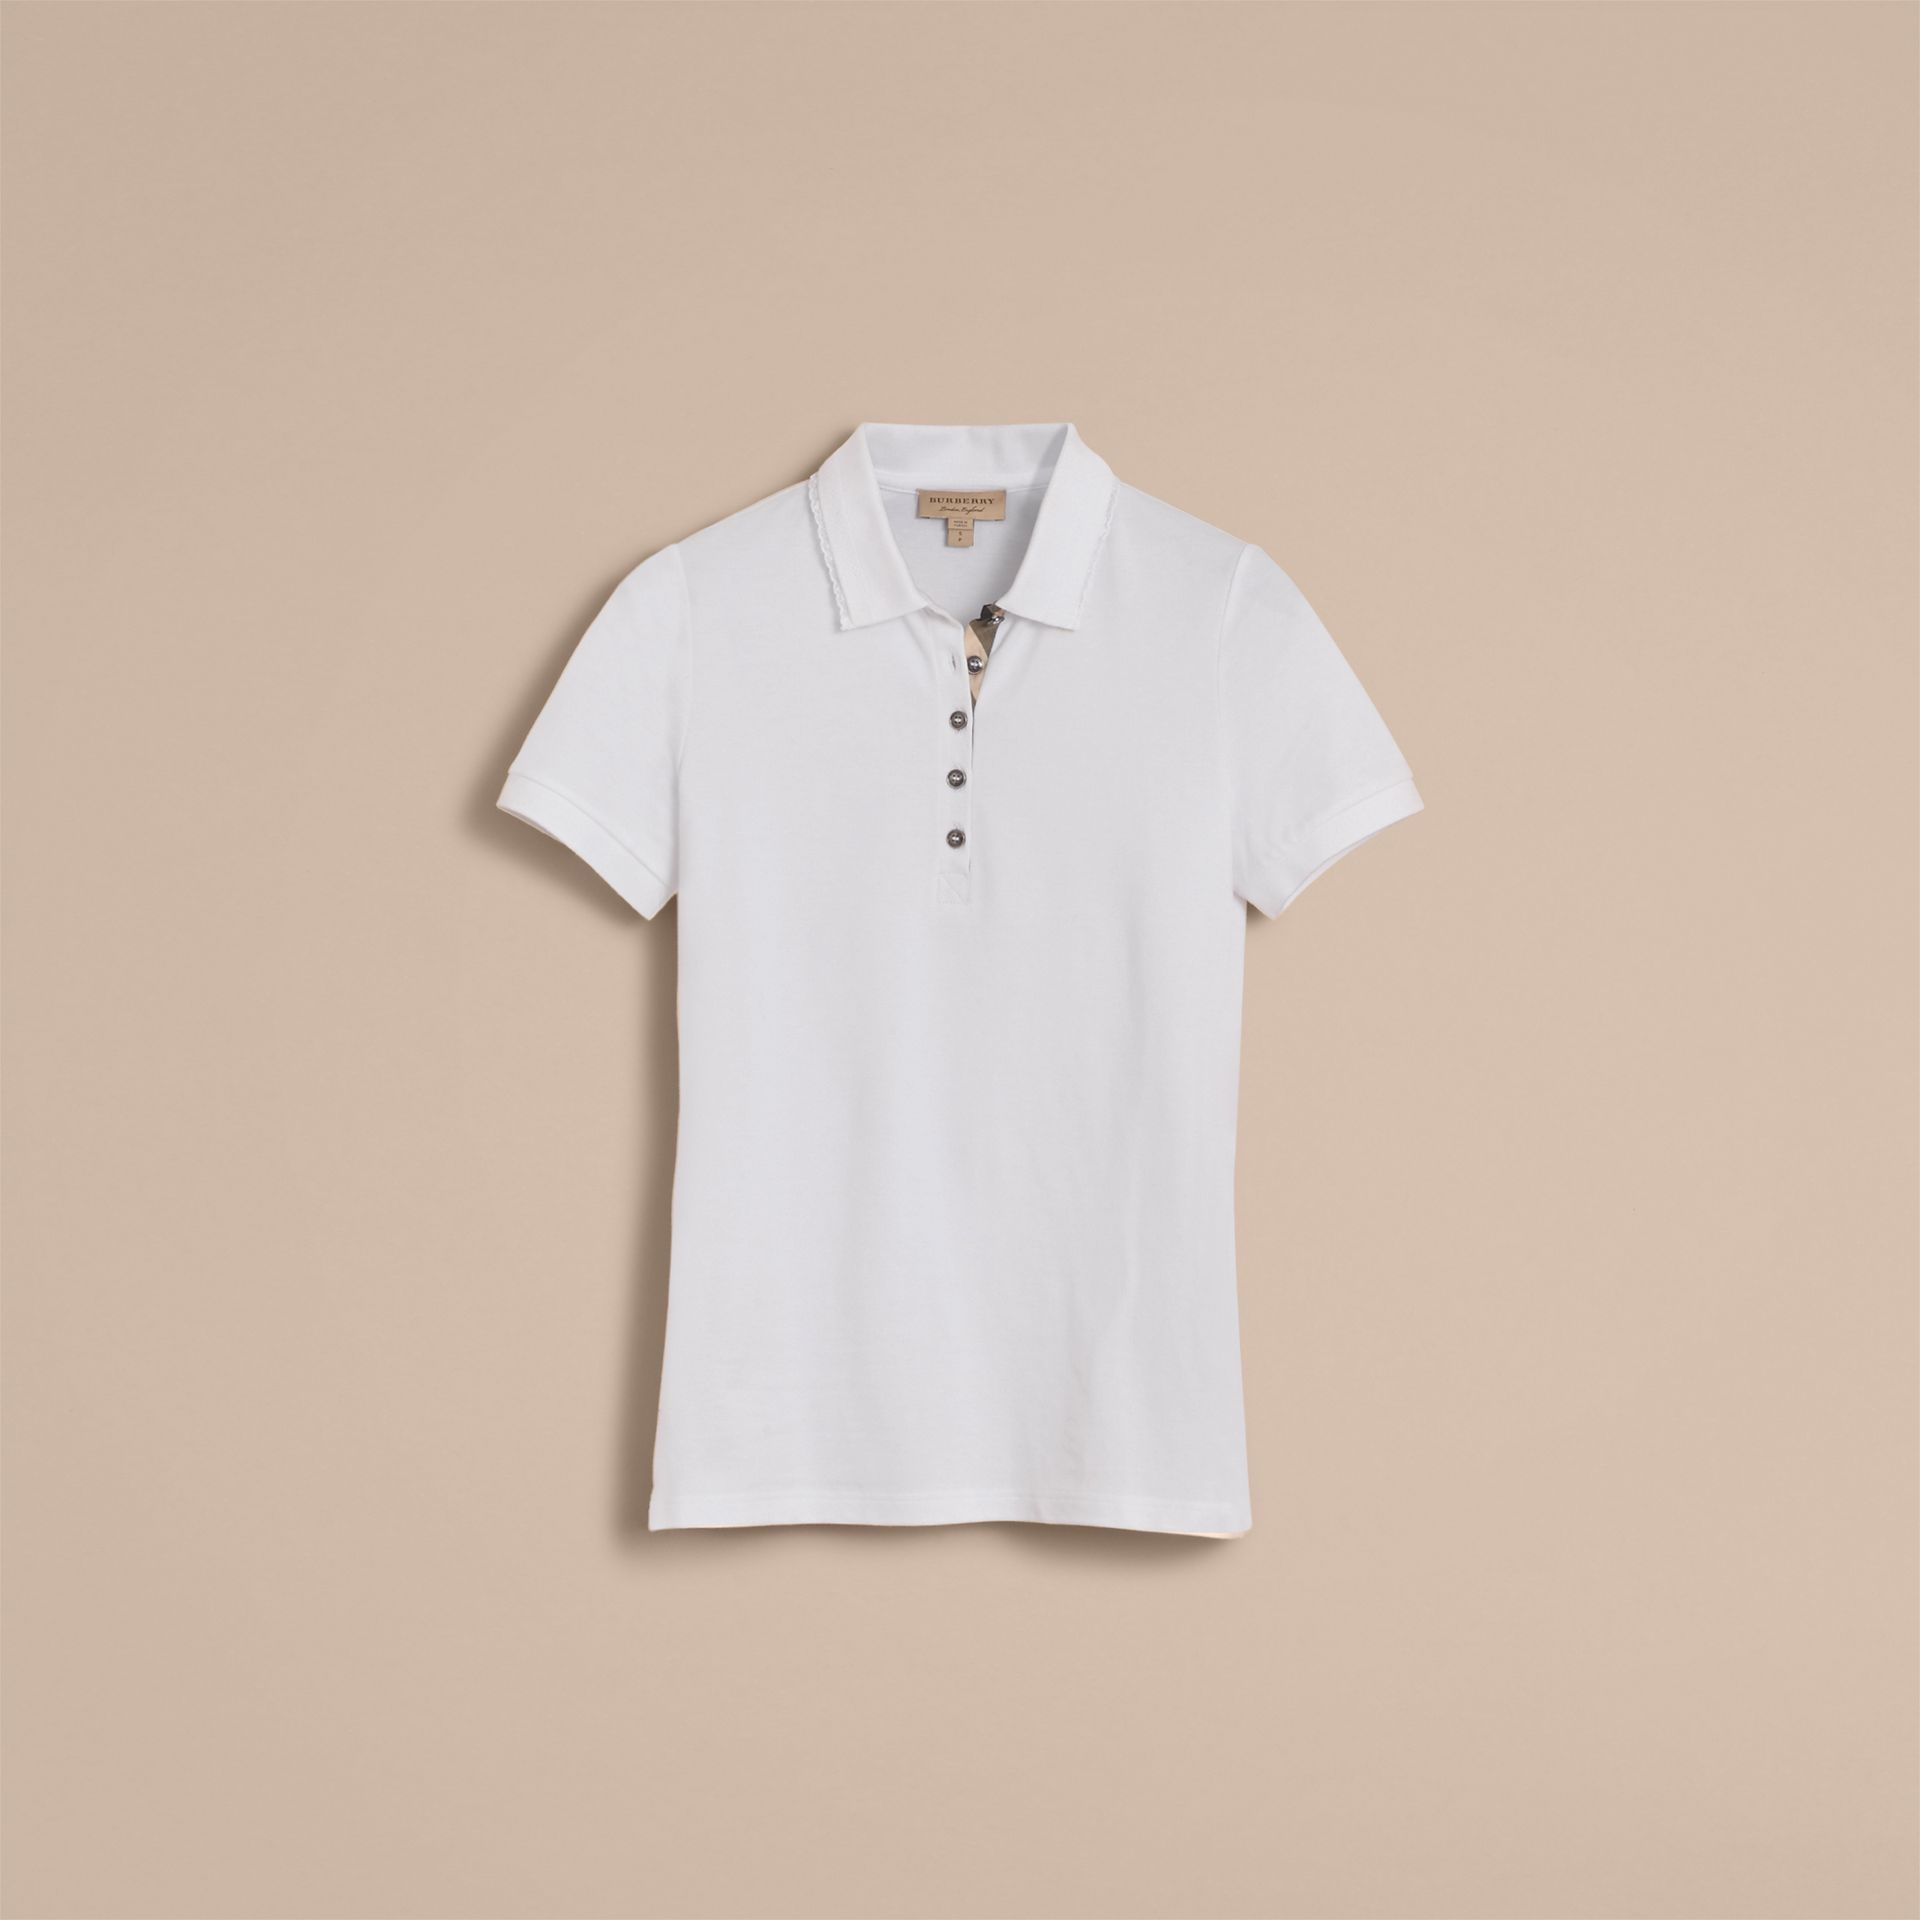 Lace Trim Cotton Blend Polo Shirt with Check Detail in White - Women | Burberry - gallery image 4